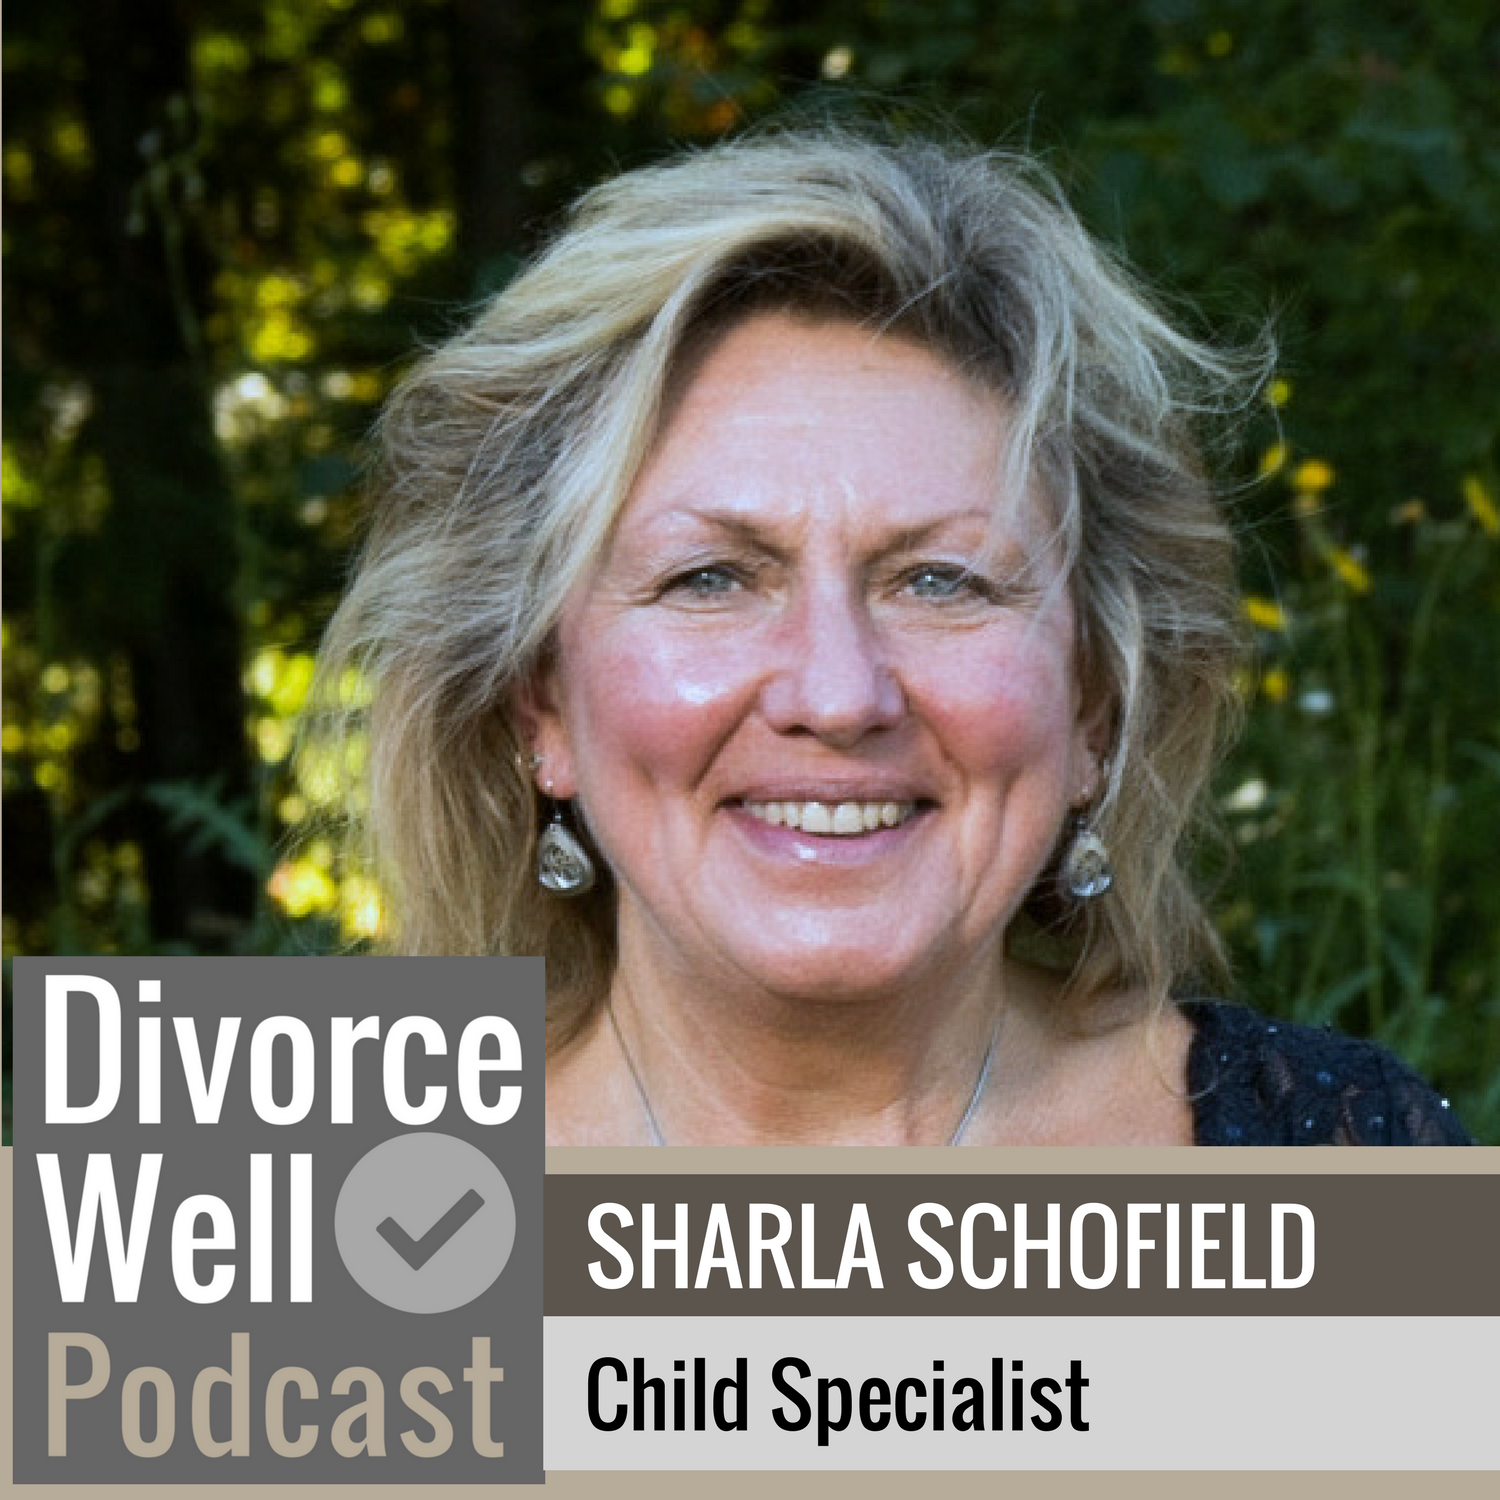 The Divorce Well Podcast - 12 - Child Specialist, Sharla Schofield